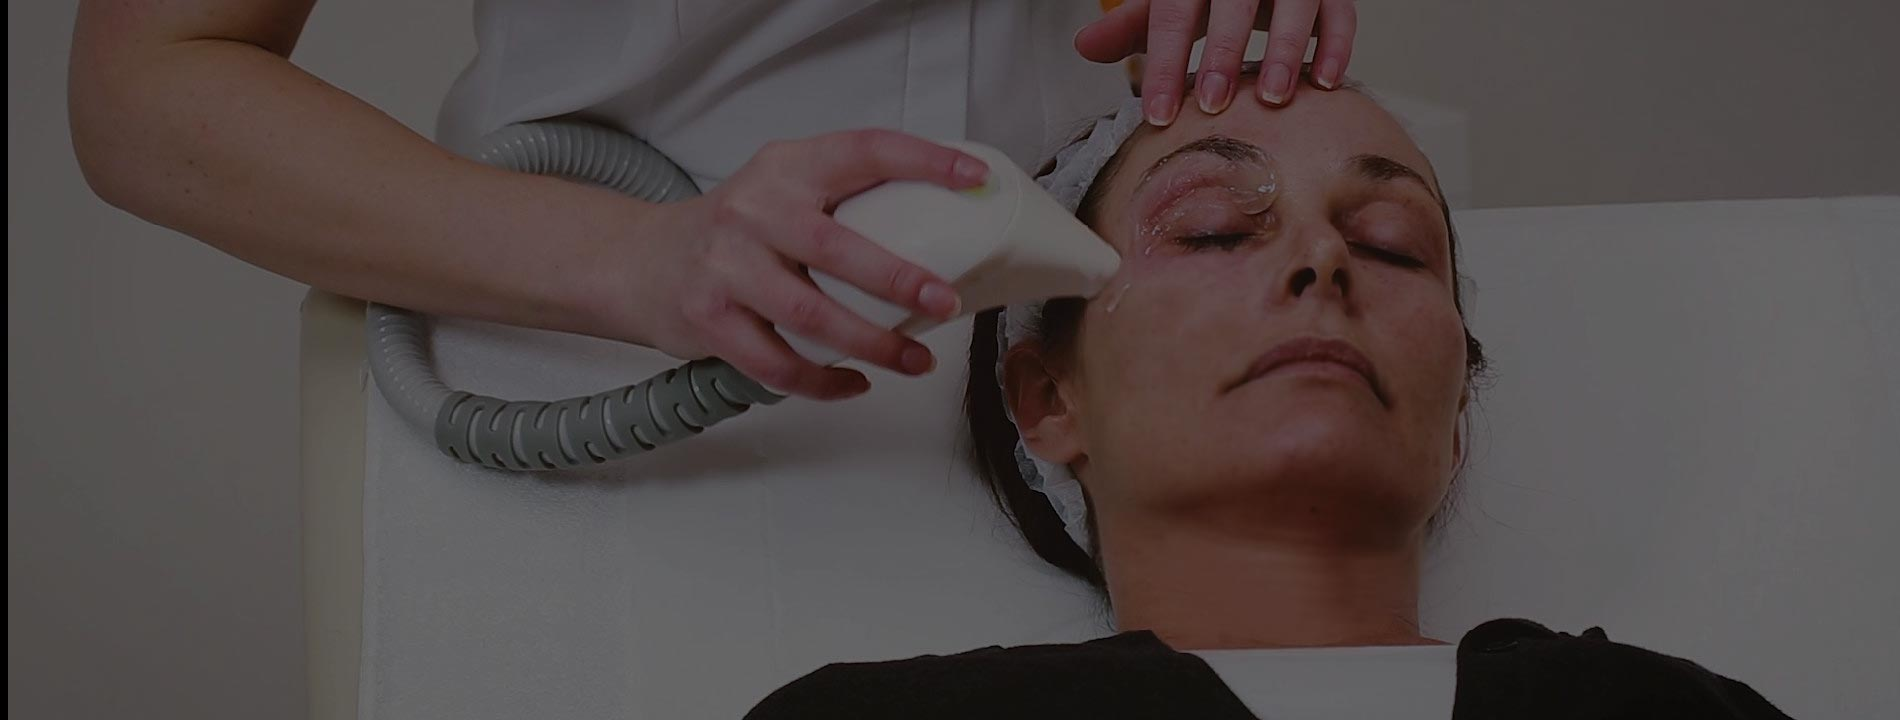 EndyMed | Radiofrequency Skin Tightening & Resurfacing